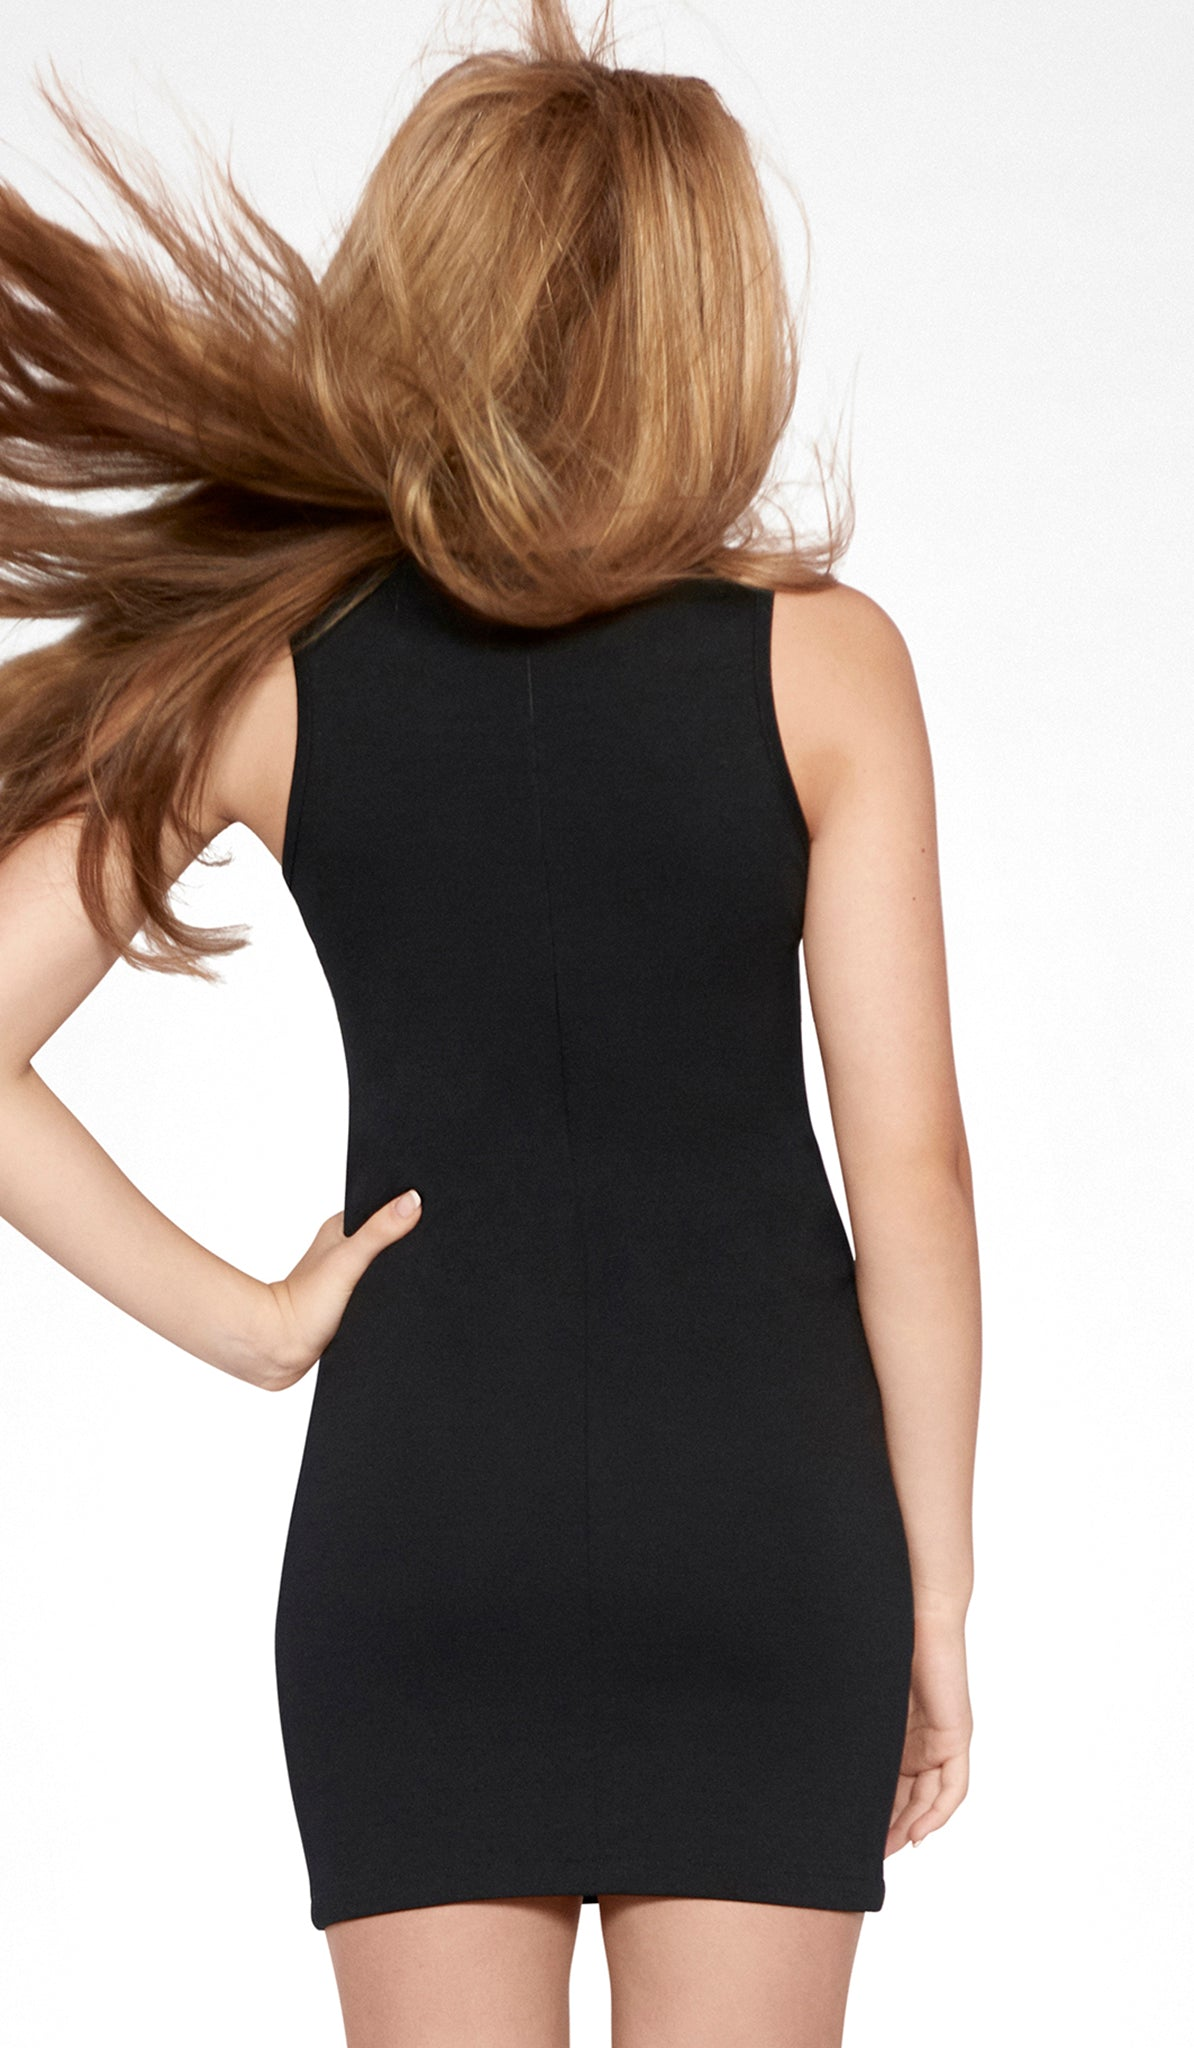 Sally Miller black combo colorblock bodycon dress back view